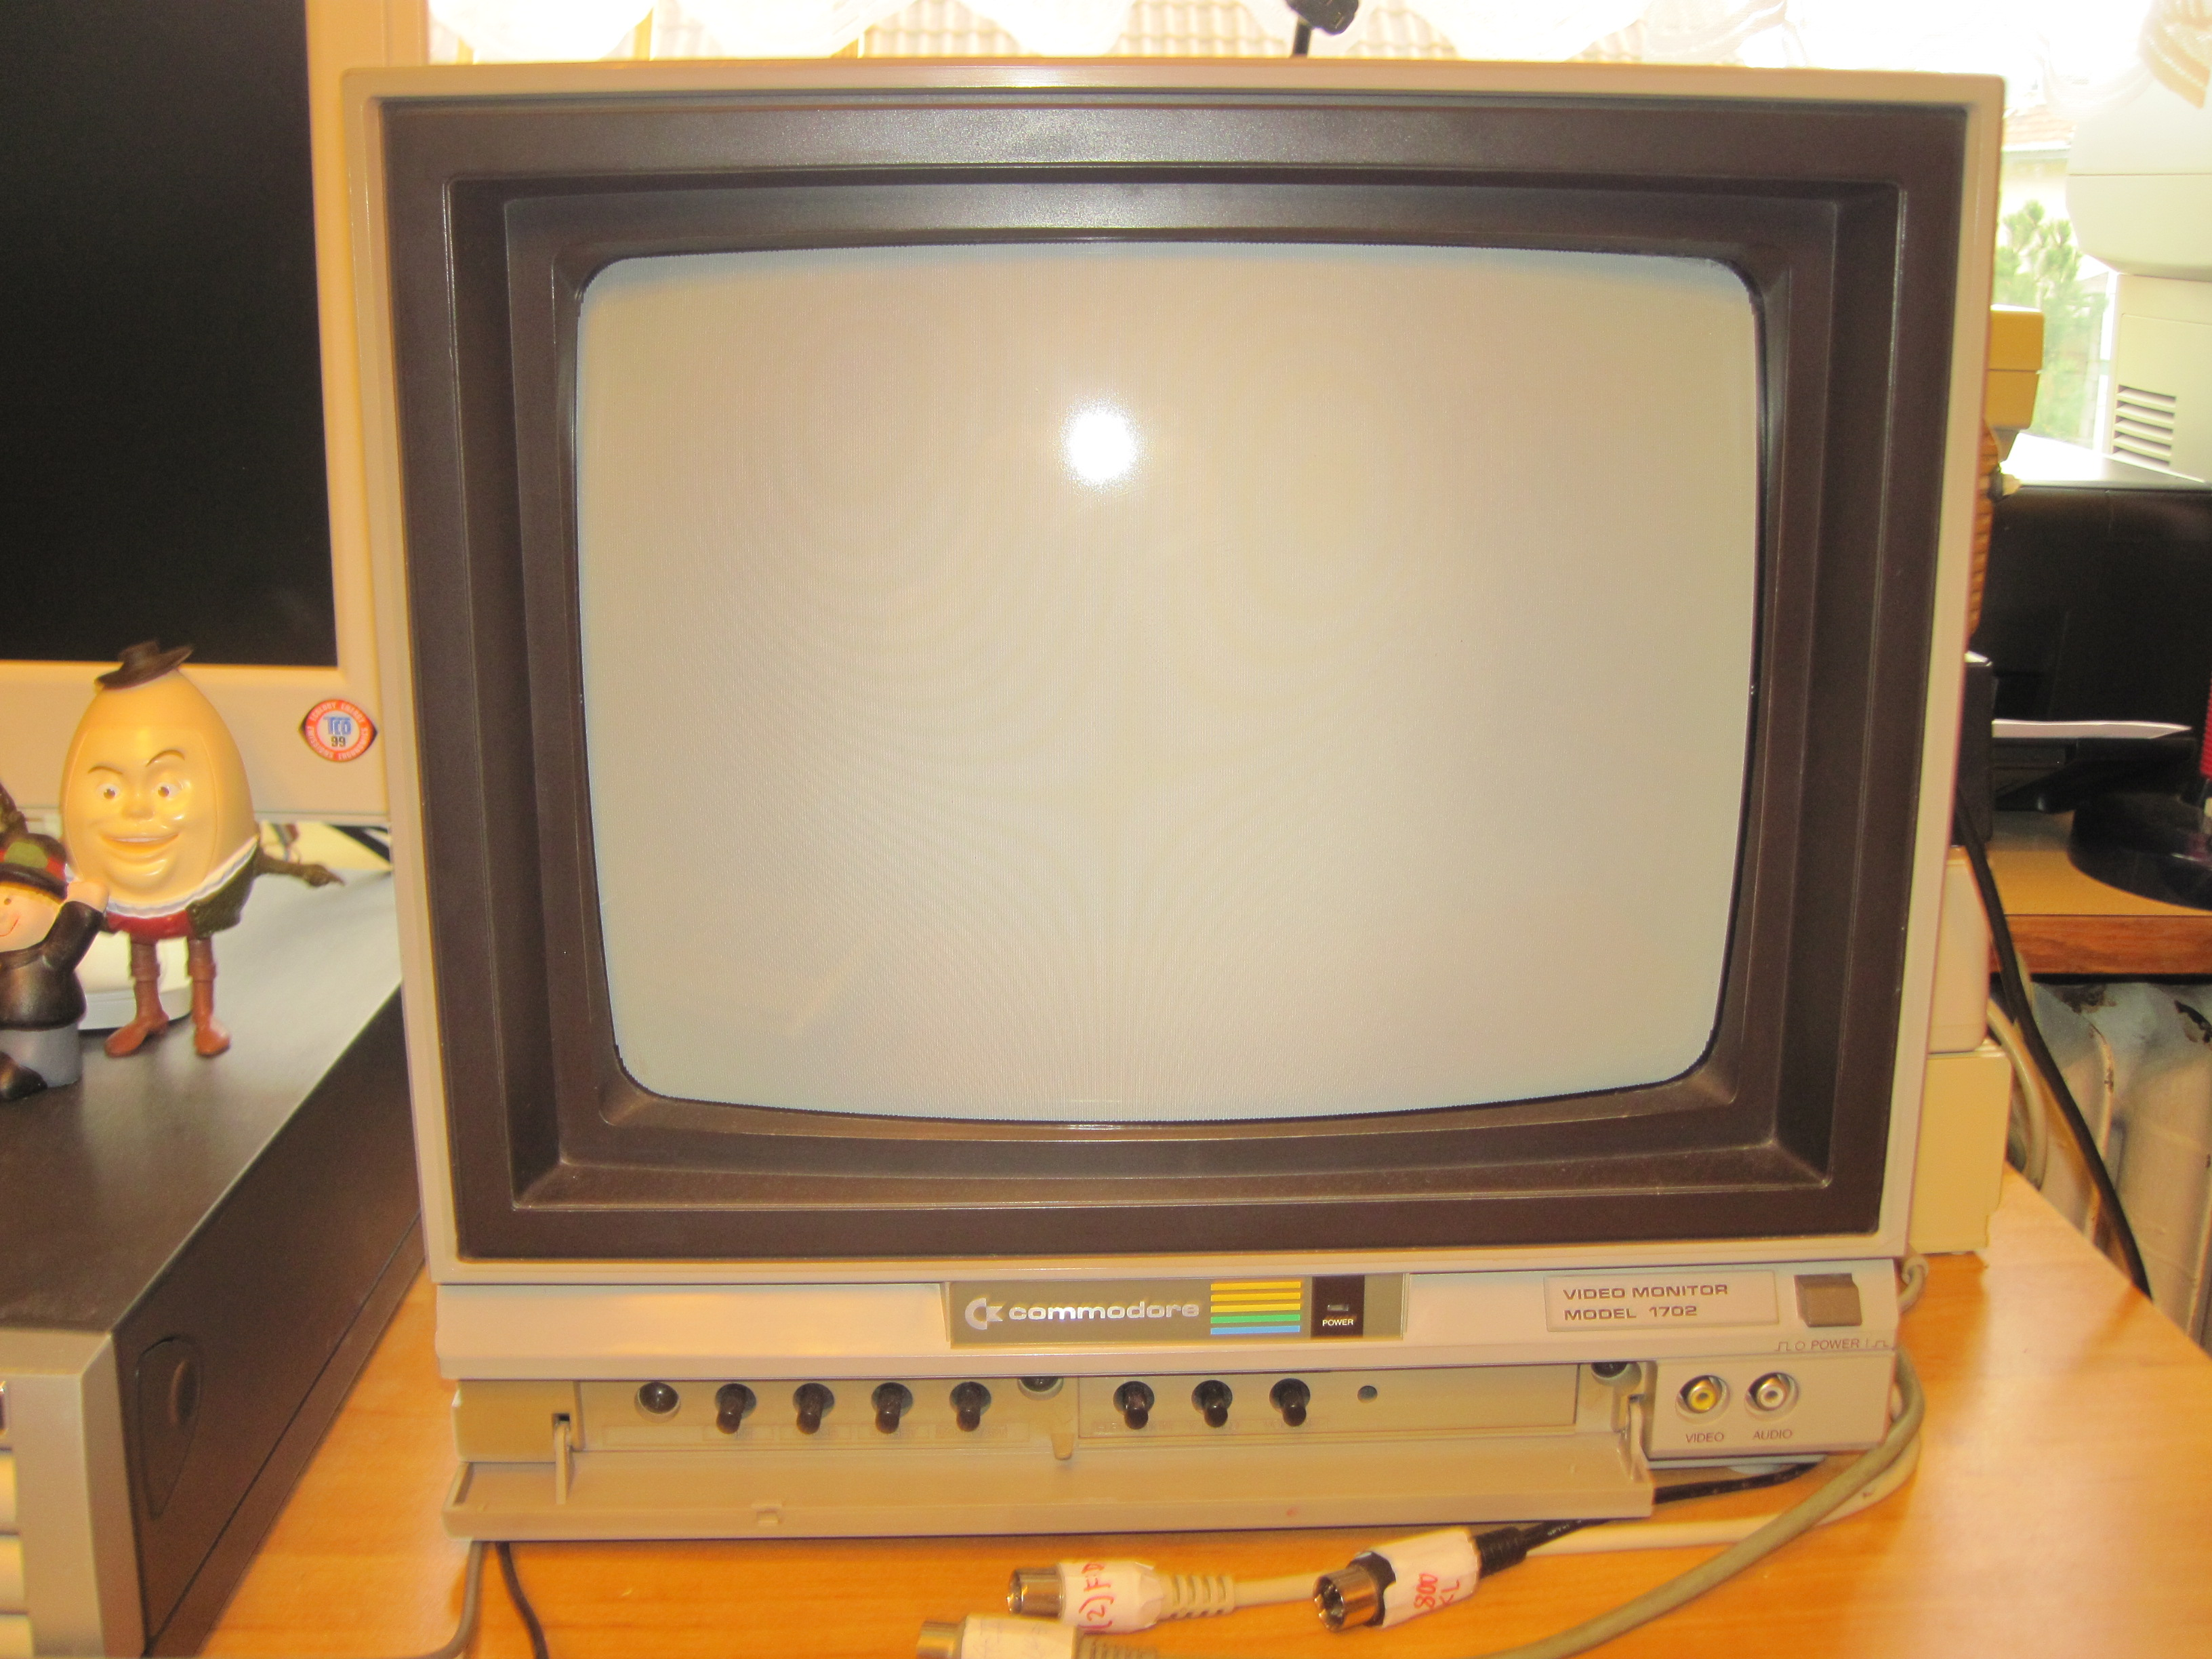 Commodore video monitor 1702 (PAL)